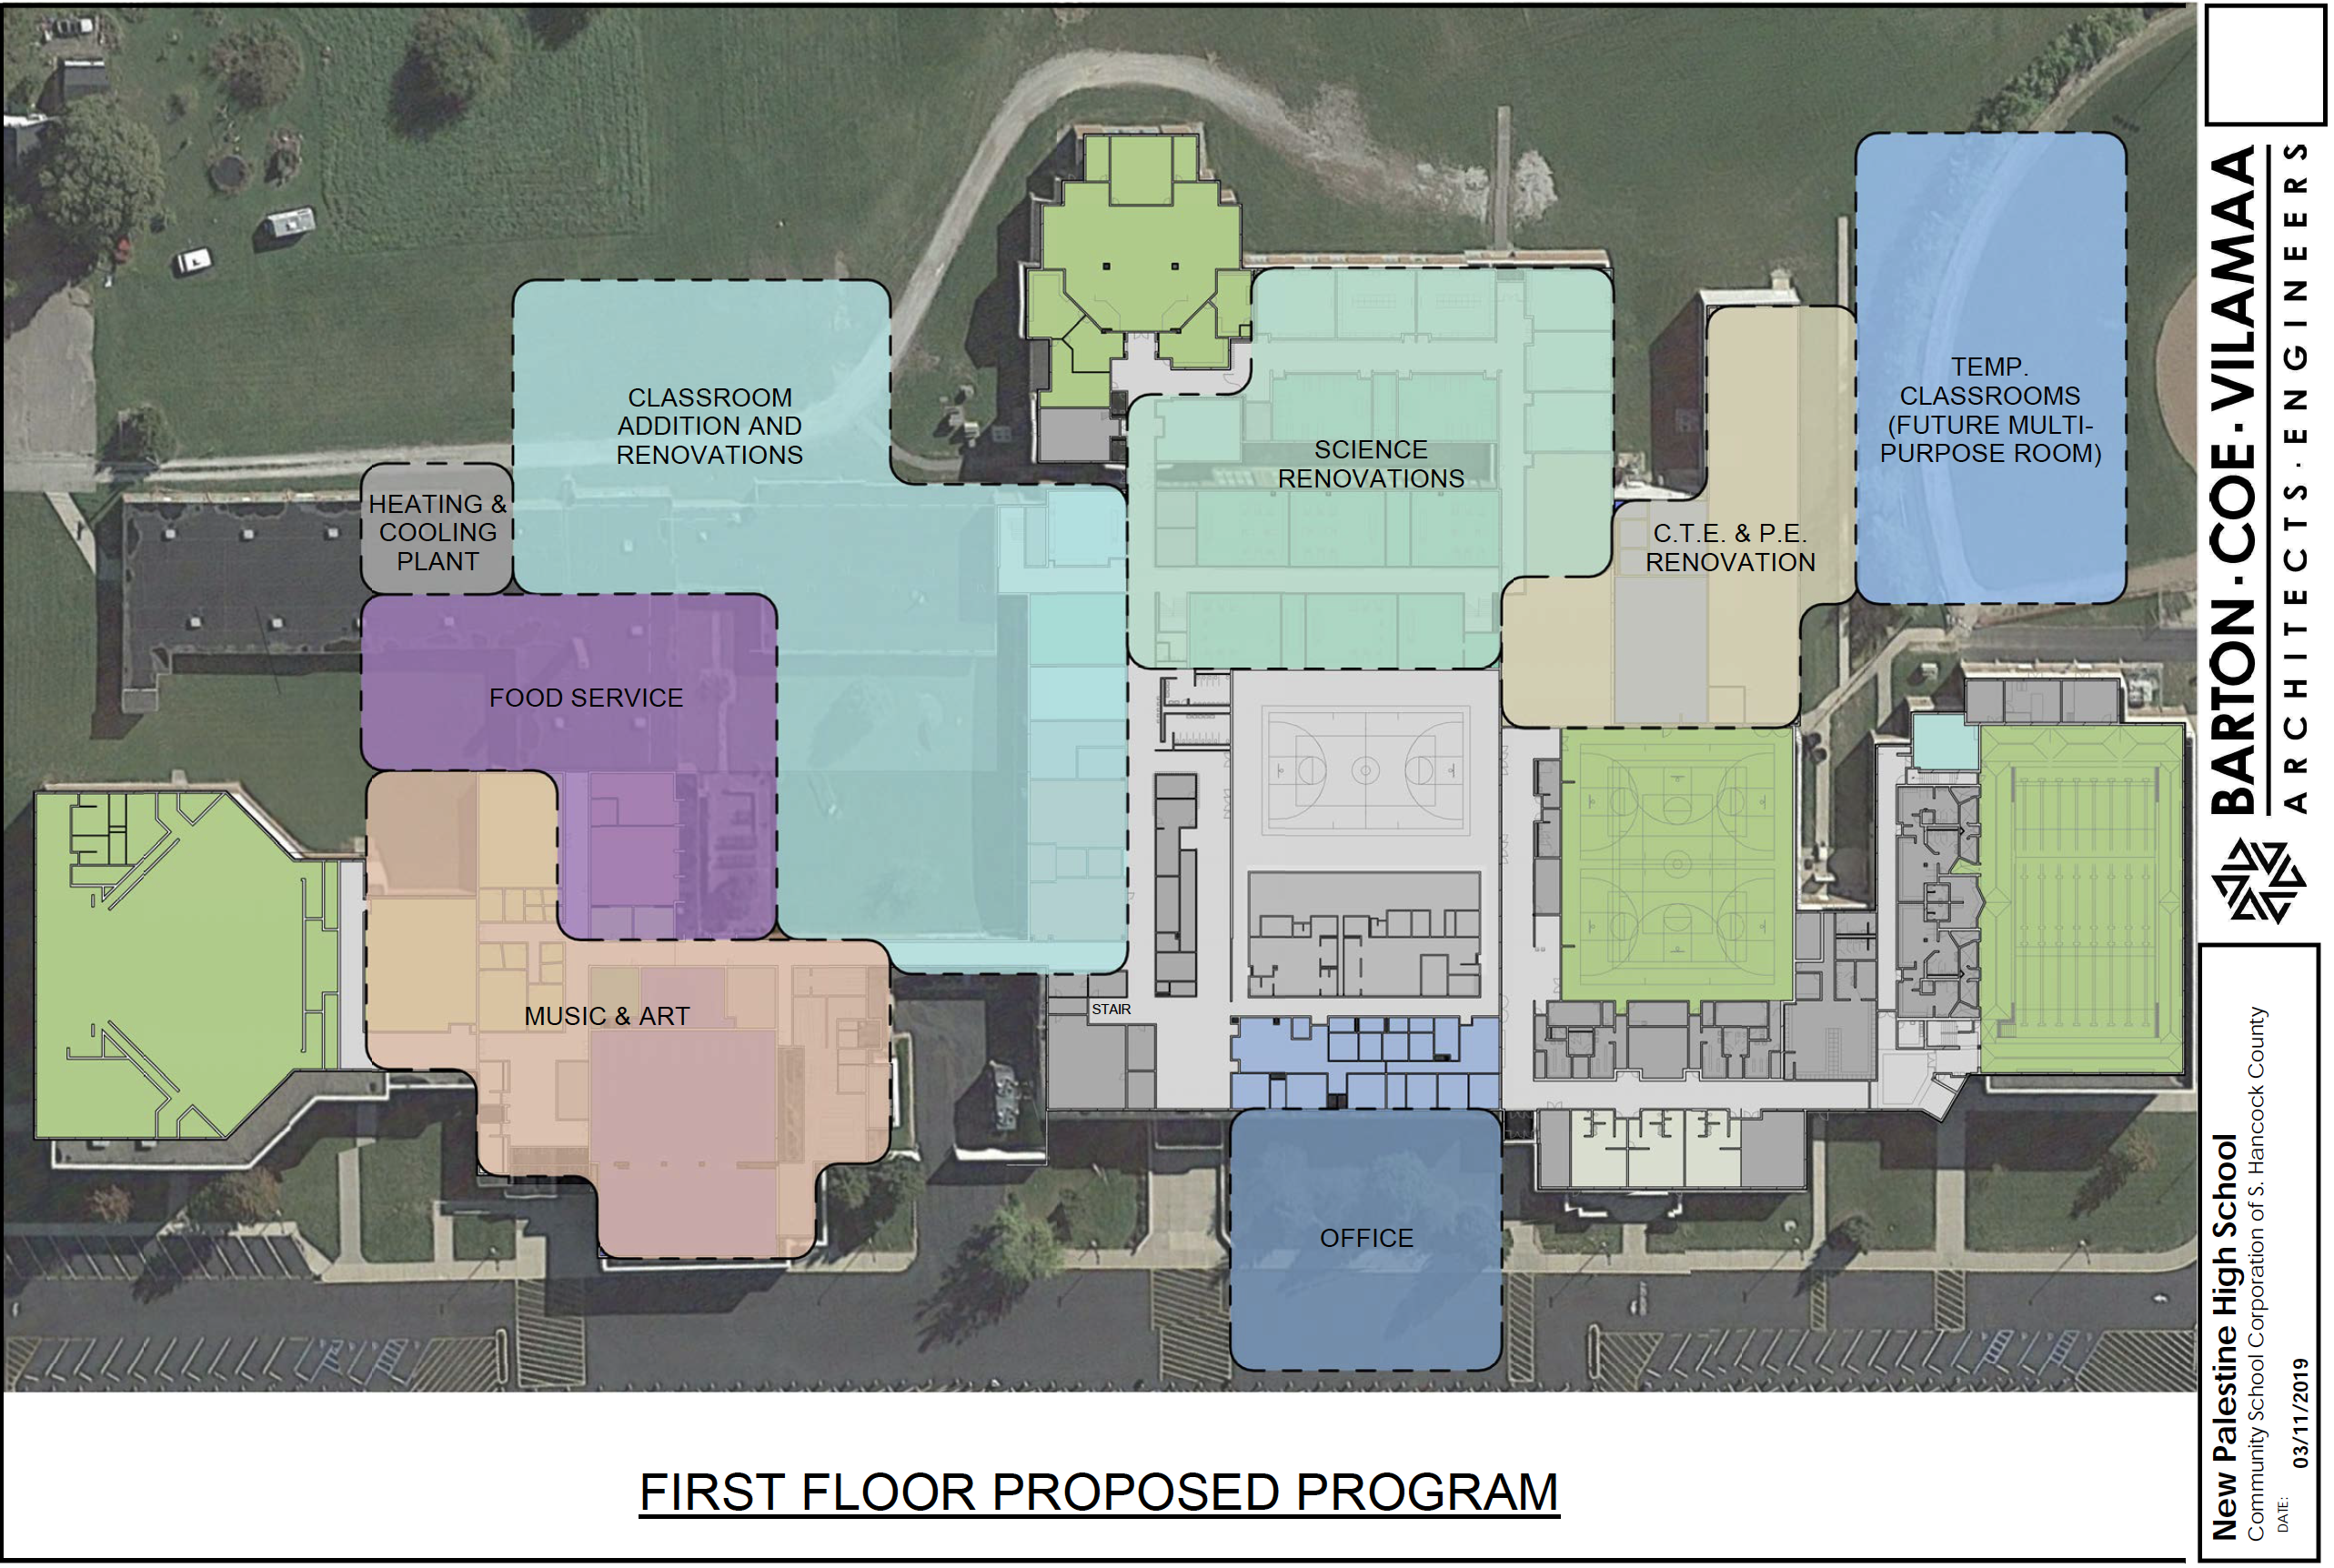 Concept of NPHS Renovation Project - First Floor